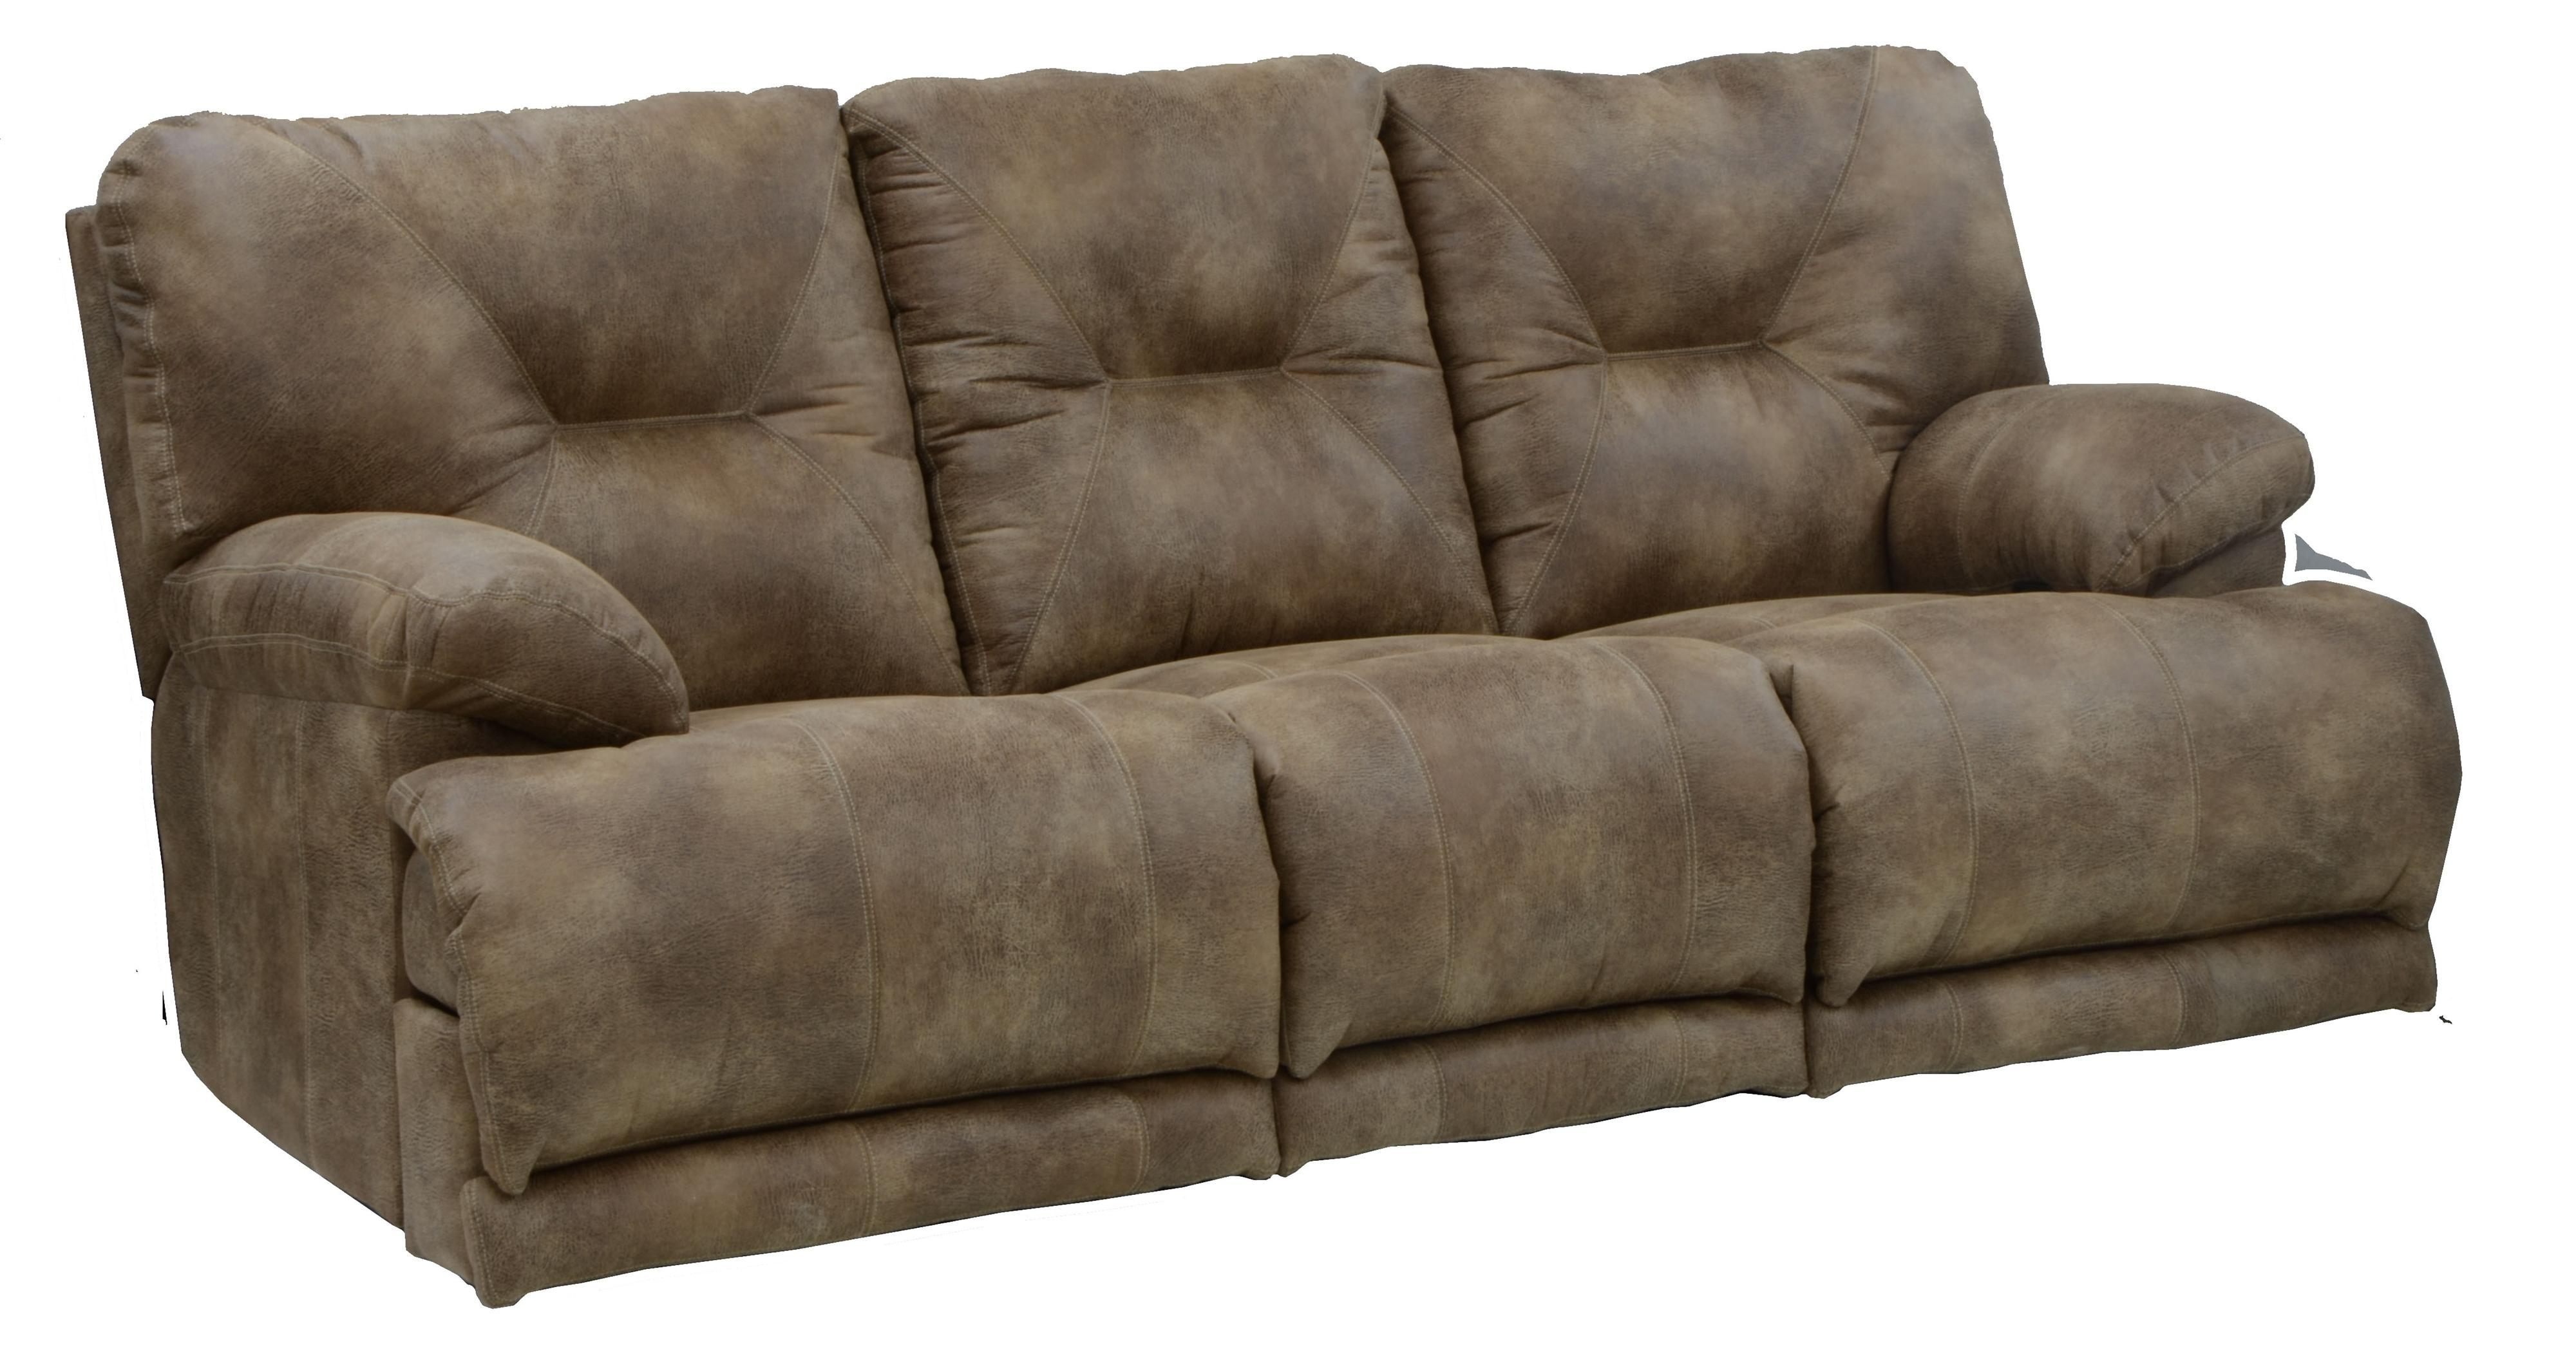 """3 Seat """"lay Flat"""" Reclining Sofa With Fold Down Middletable pertaining to Catnapper Recliner Sofas"""